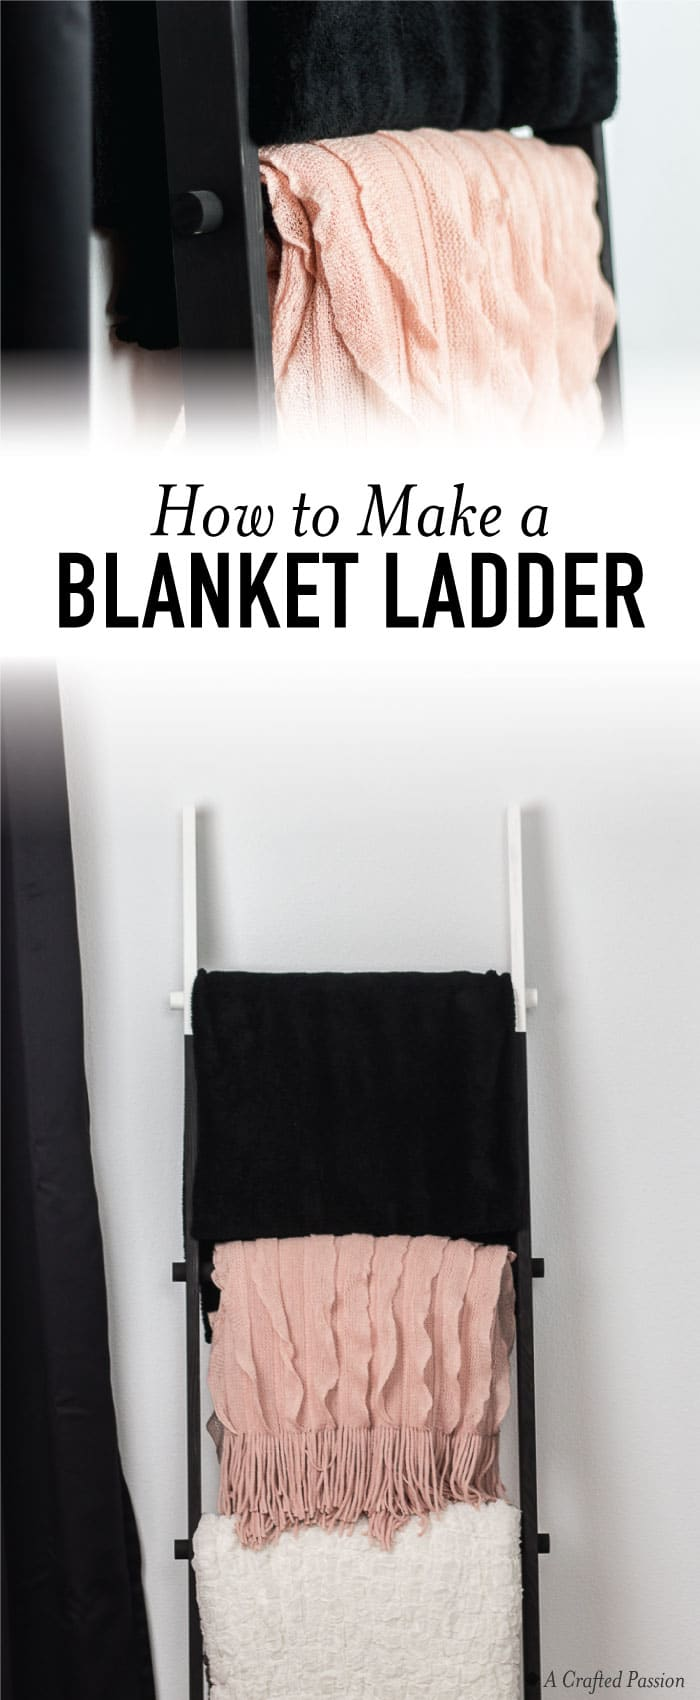 CHECK OUT this simple tutorial on how to make a wood blanket ladder. It looks great in your living room, bedroom, or even bathroom to hold towels. LOVE!! #diy #wood #furniture #blanketladder